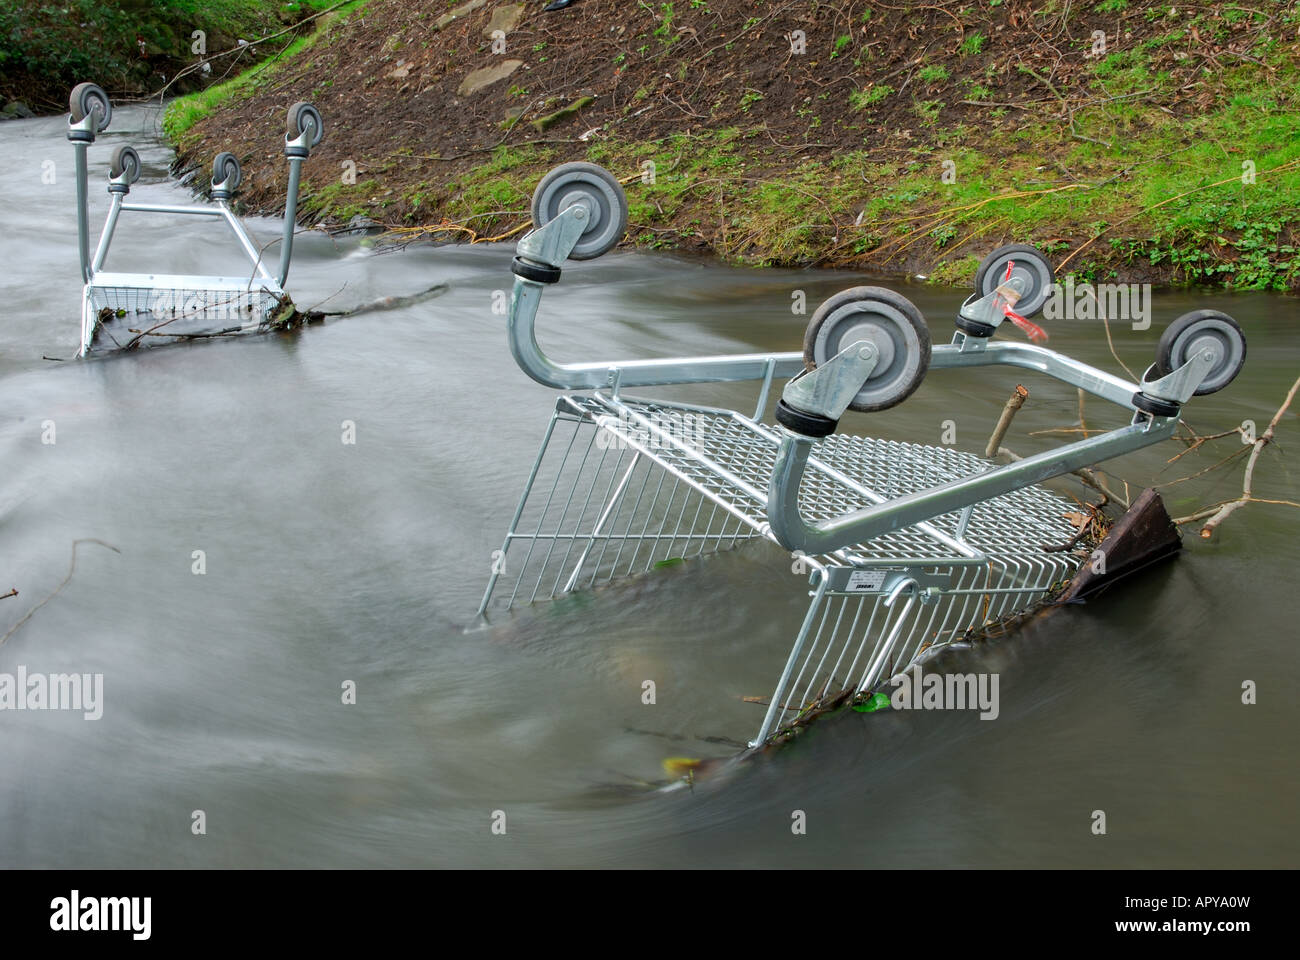 Shopping Trollies Dumped in River. - Stock Image